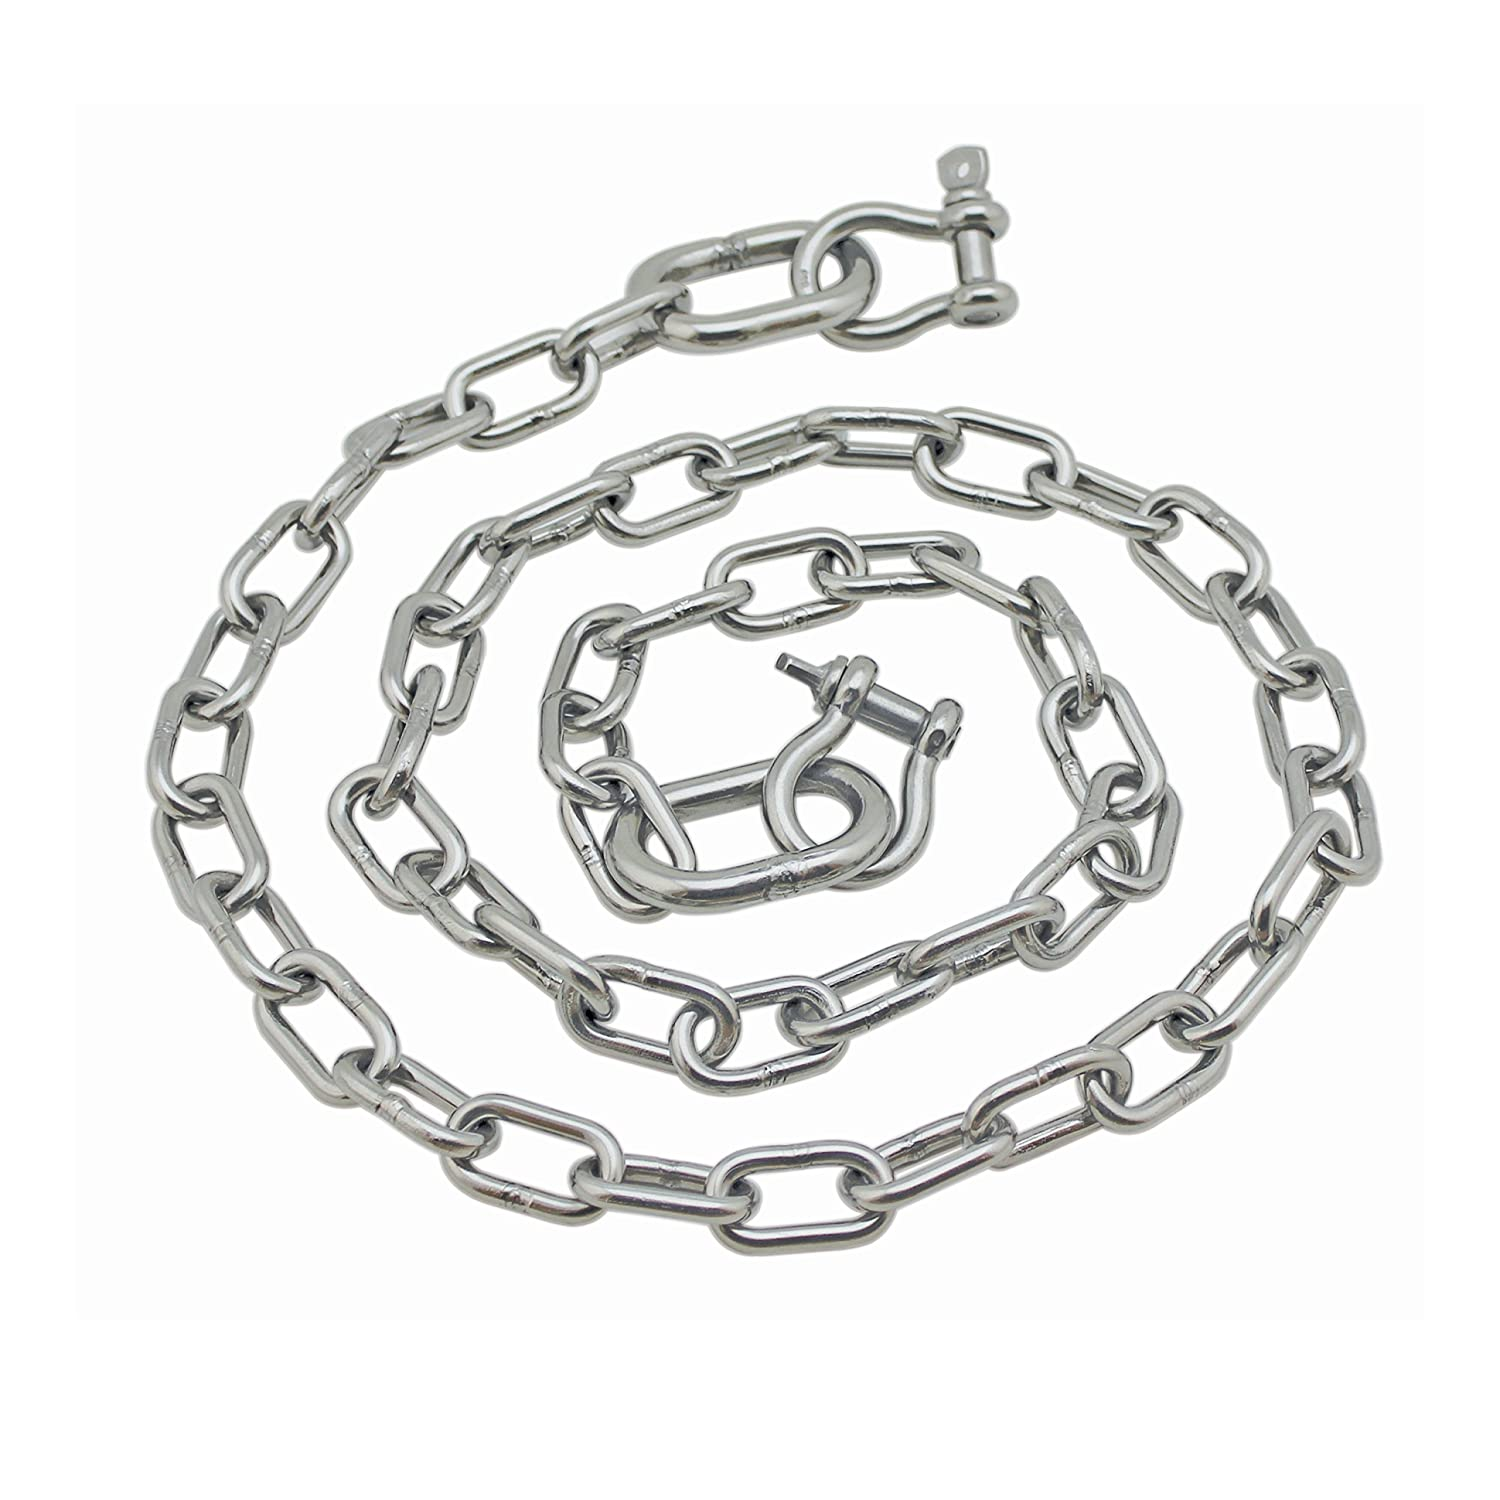 """Extreme Max 3006.6578 BoatTector Anchor Chain - 1/4"""" x 4' Stainless Steel with 5/16"""" Shackles"""